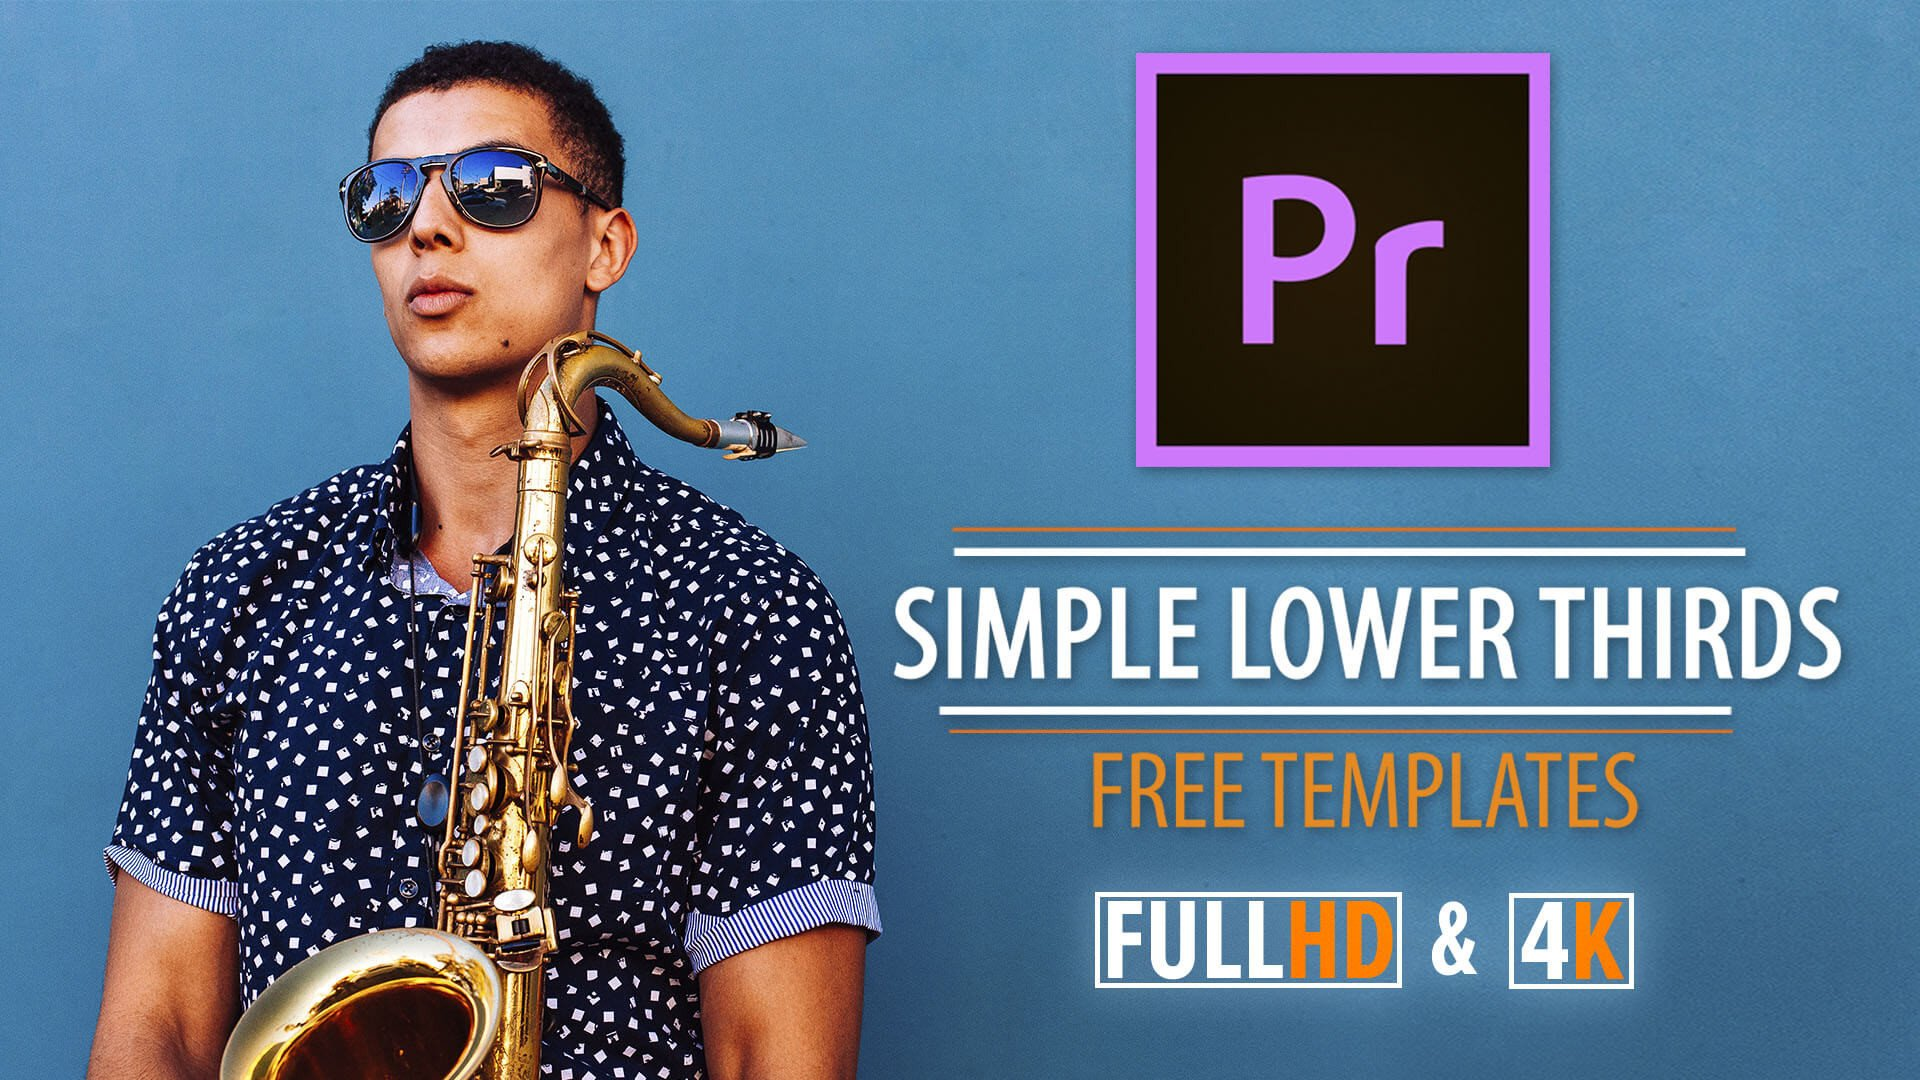 Free Lower Thirds Templates Premiere Simple Lower Thirds Templates for Premiere Pro